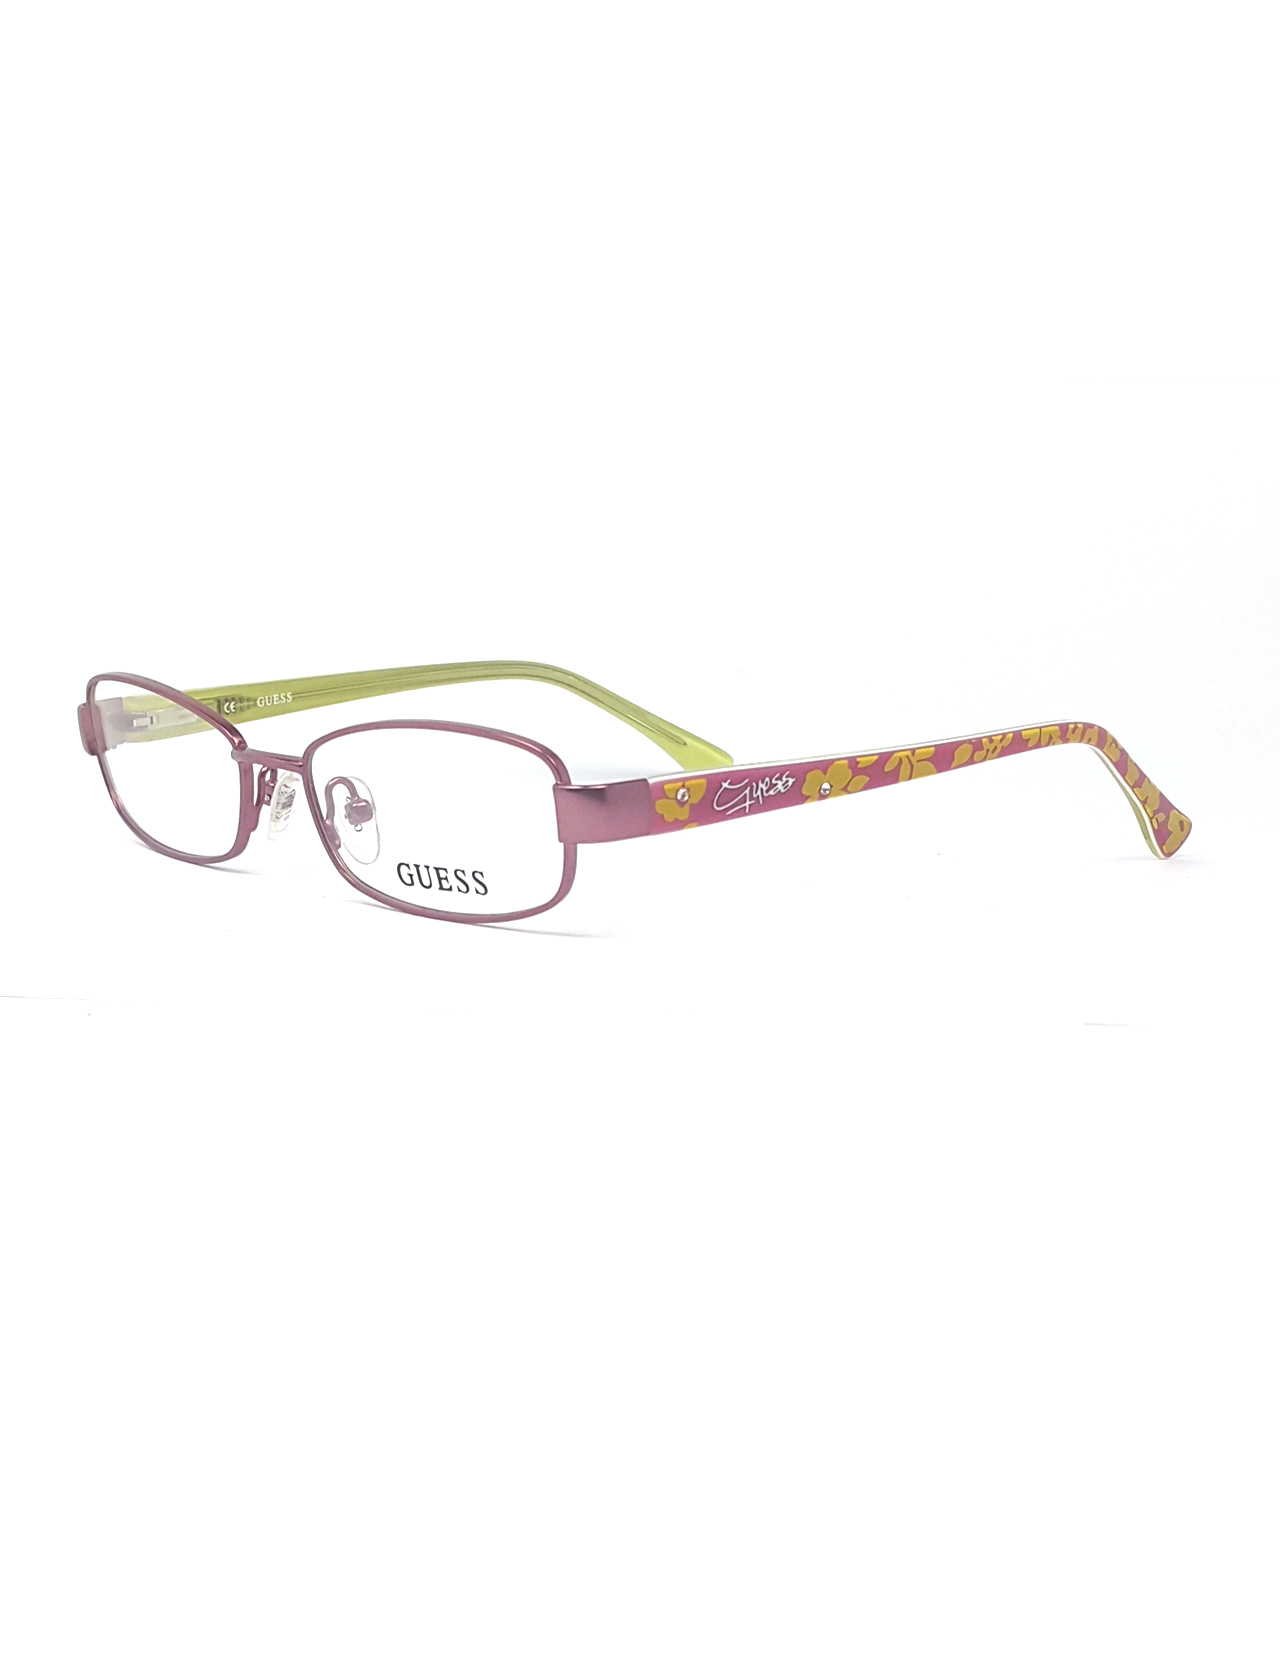 Markamilla Children Reading Glasses Frame Demo Glasses Eyewear Transparent High Quality ChildrenGuess GU 9096 PNK фото